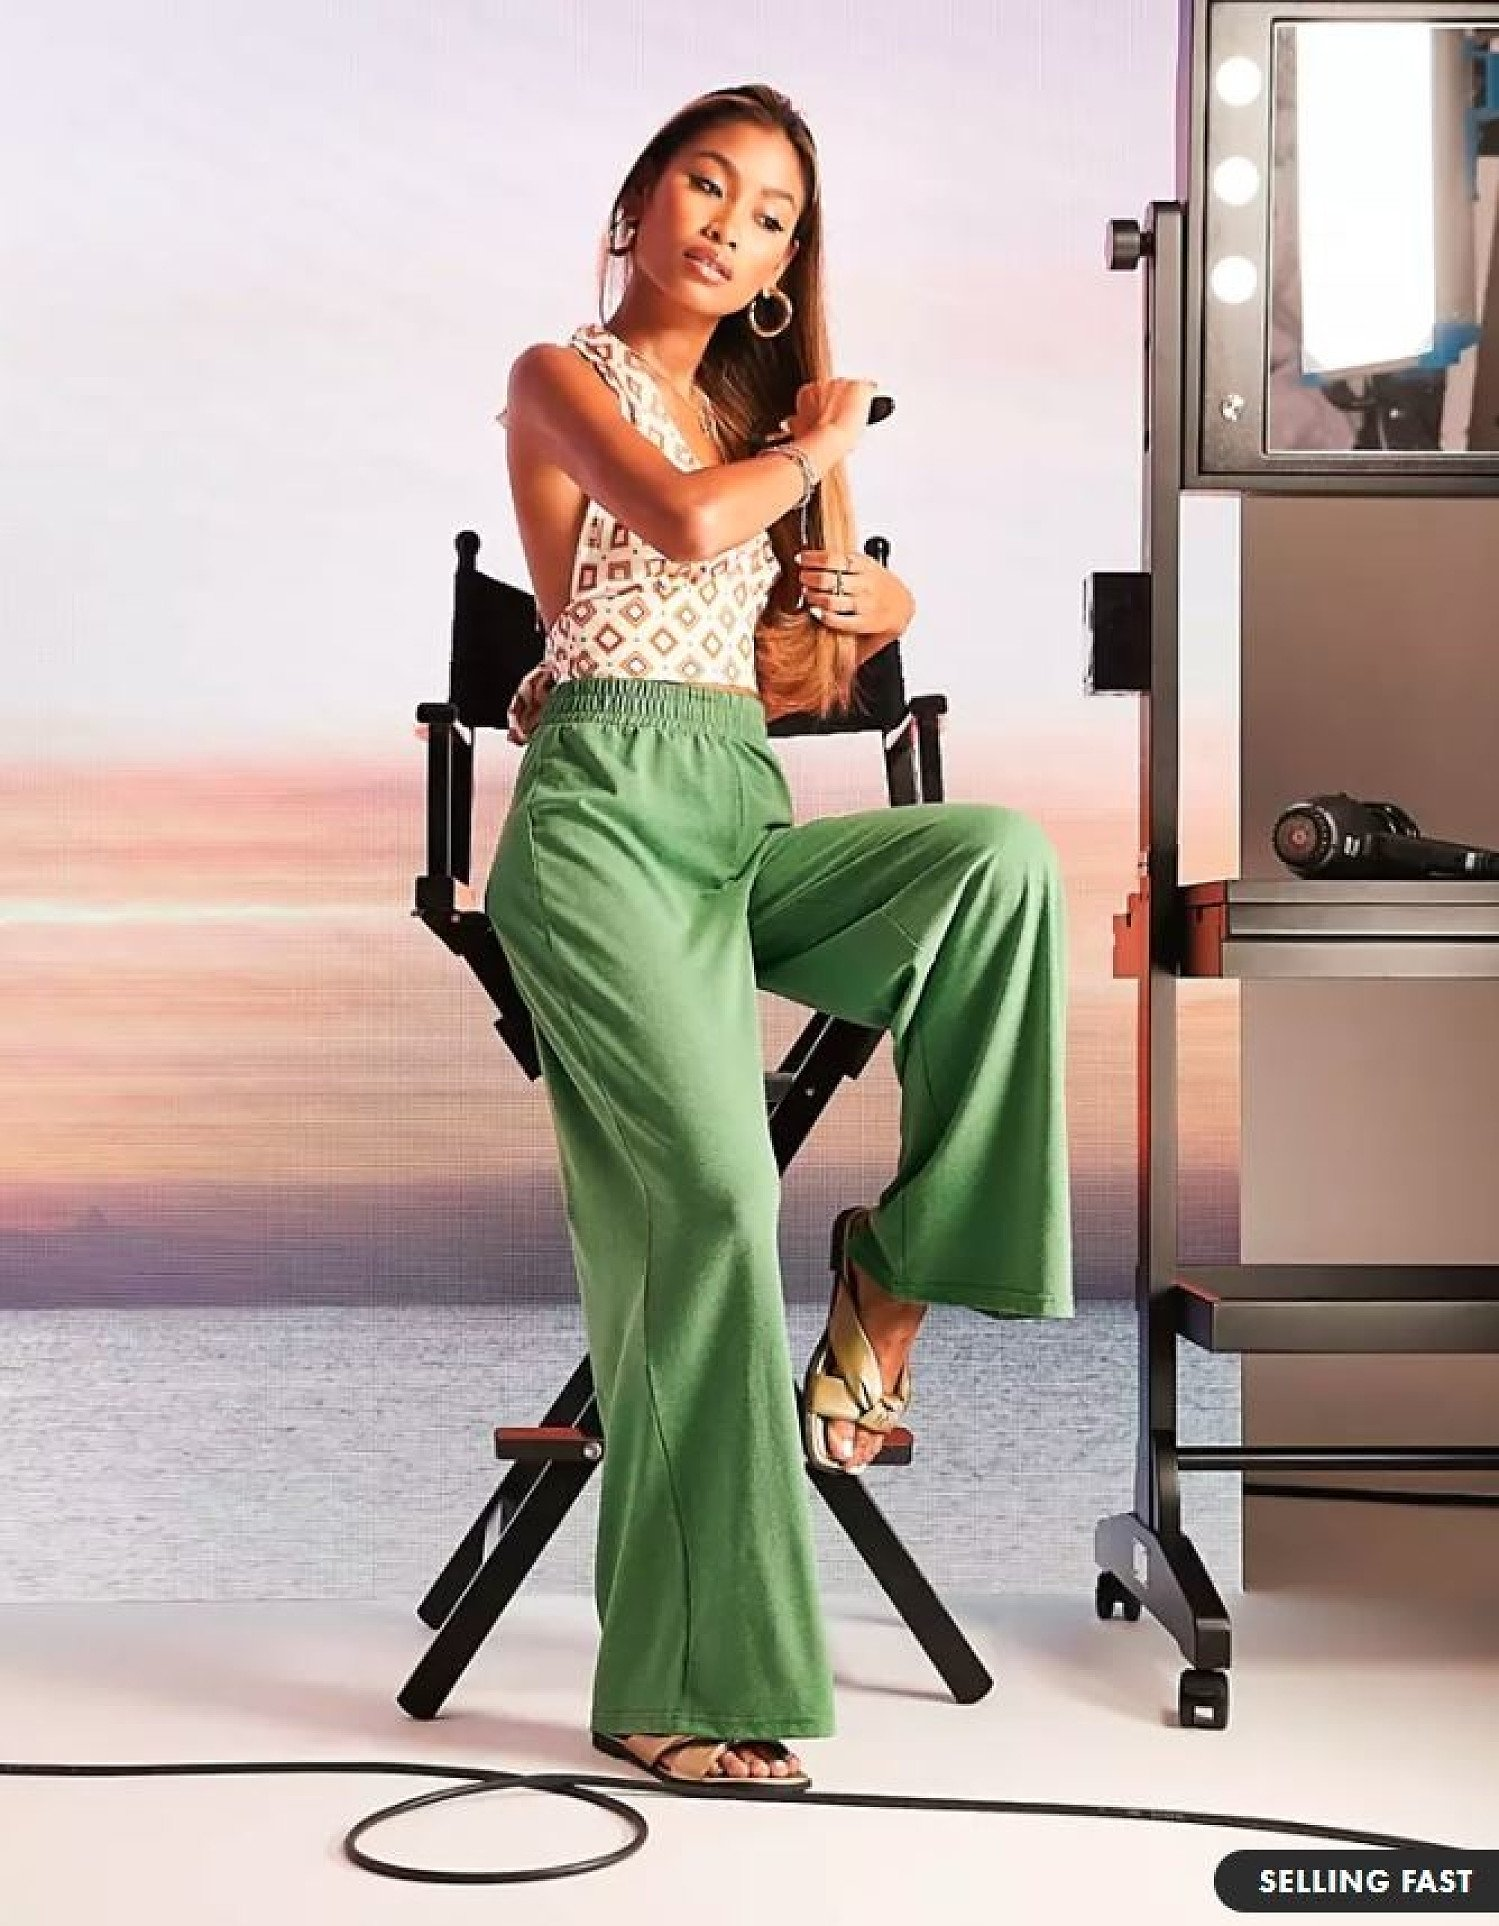 ASOS DESIGN jersey wide leg trouser in paradise green marl current price - £20.00!